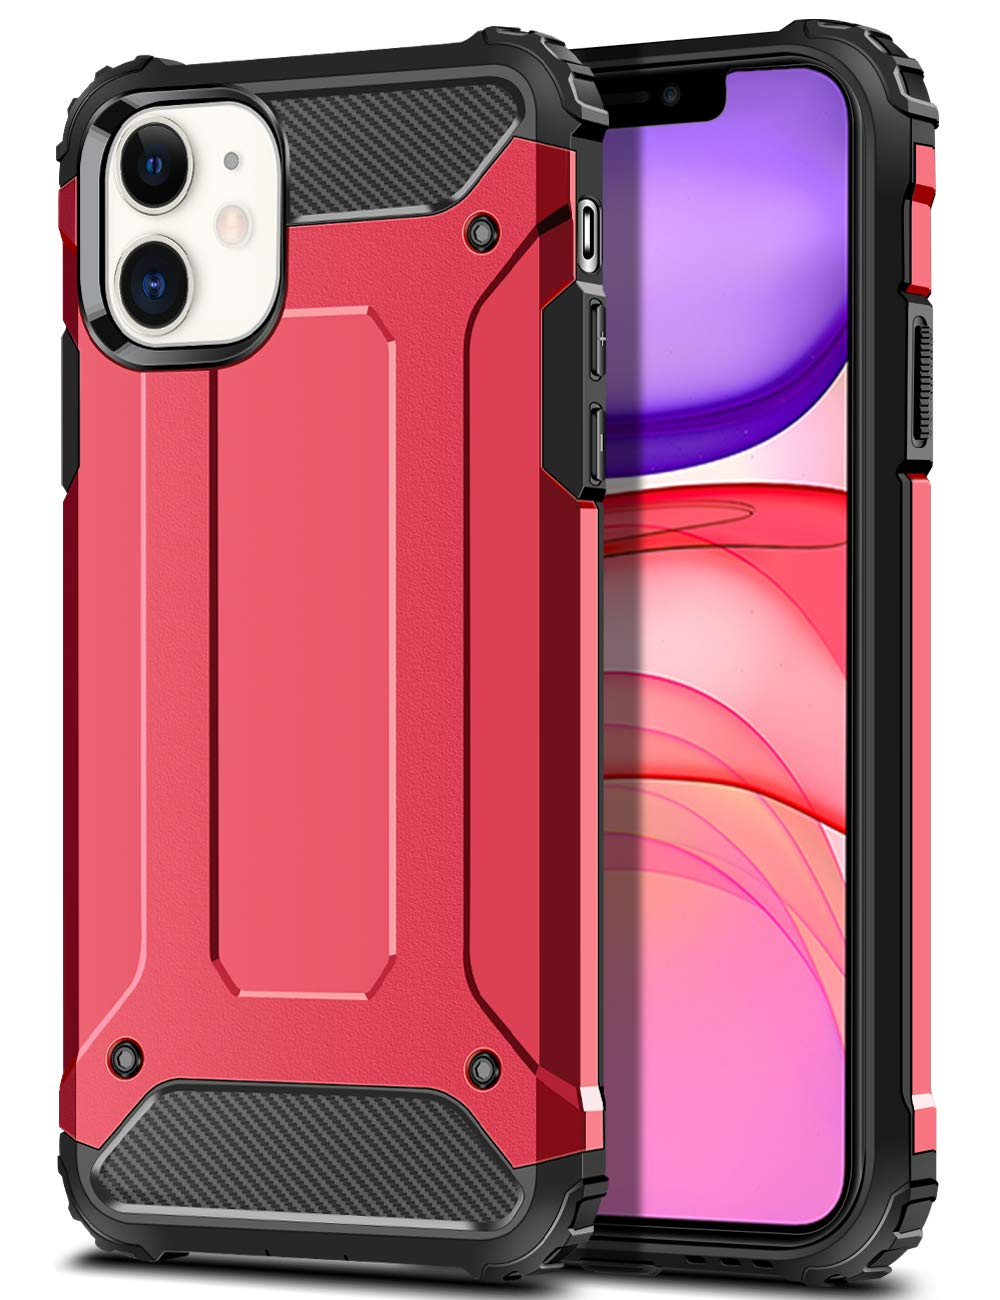 WOLLONY for iPhone 11 Case Rugged Heavy Duty Armor Hybrid Dual Layer Slim Fit Hard Impact Resistant Phone Case Anti-Scratch Durable Cover for iPhone 11 6.1 inch Support Power Sharing Red